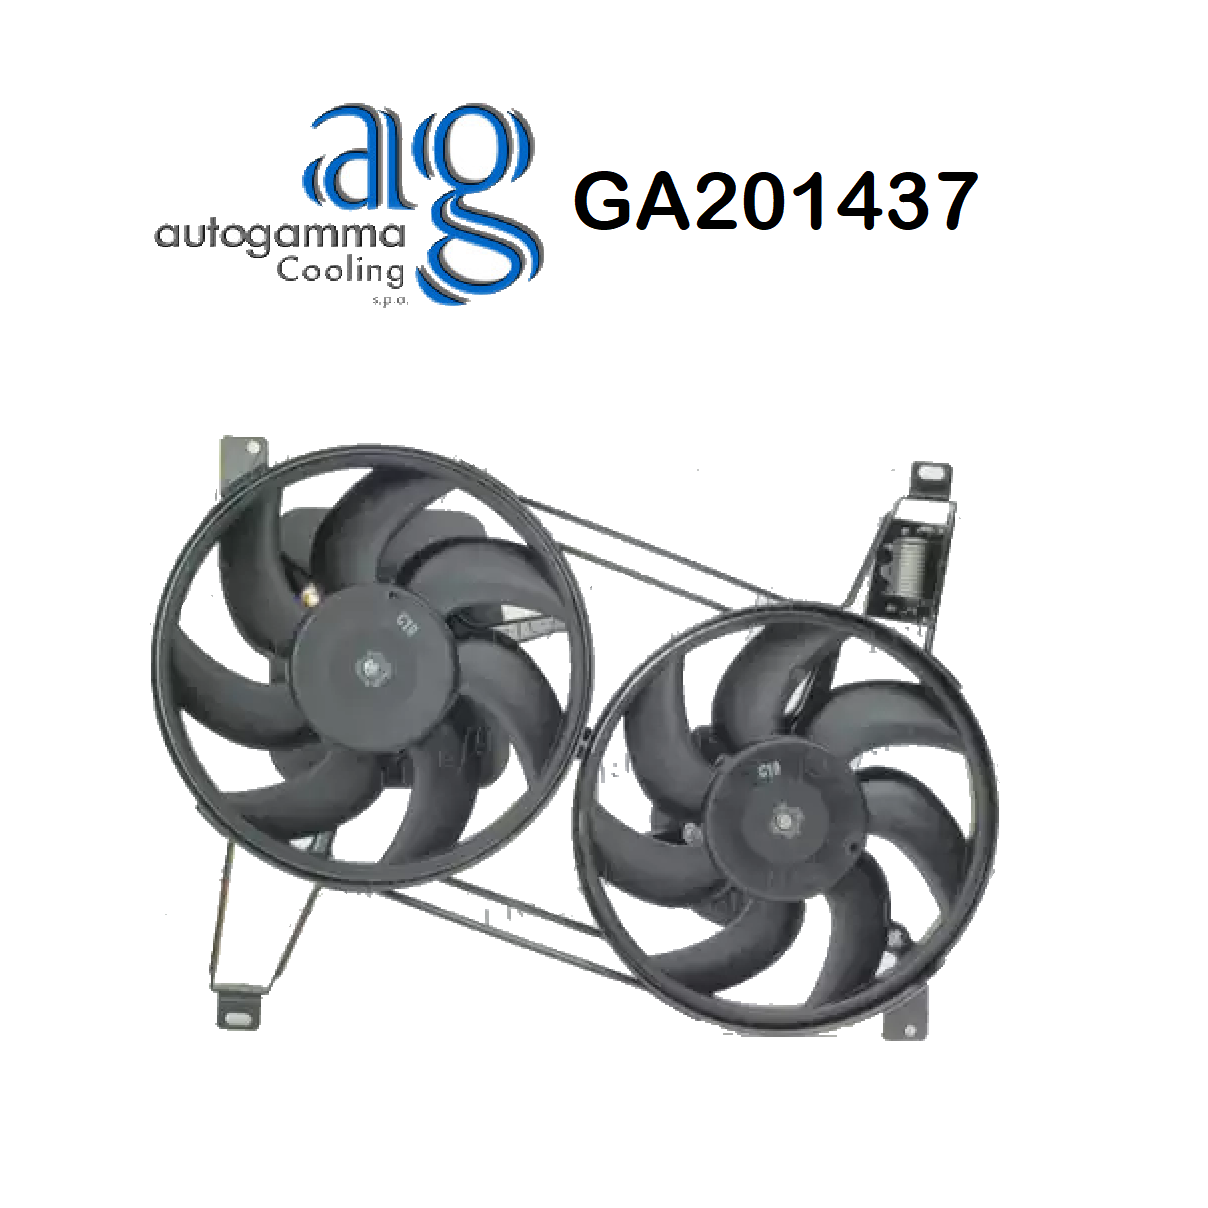 FIAT COUPE 'ENGINE COOLING FAN - LANCIA DEDRA AUTOGAMMA FOR 7698896